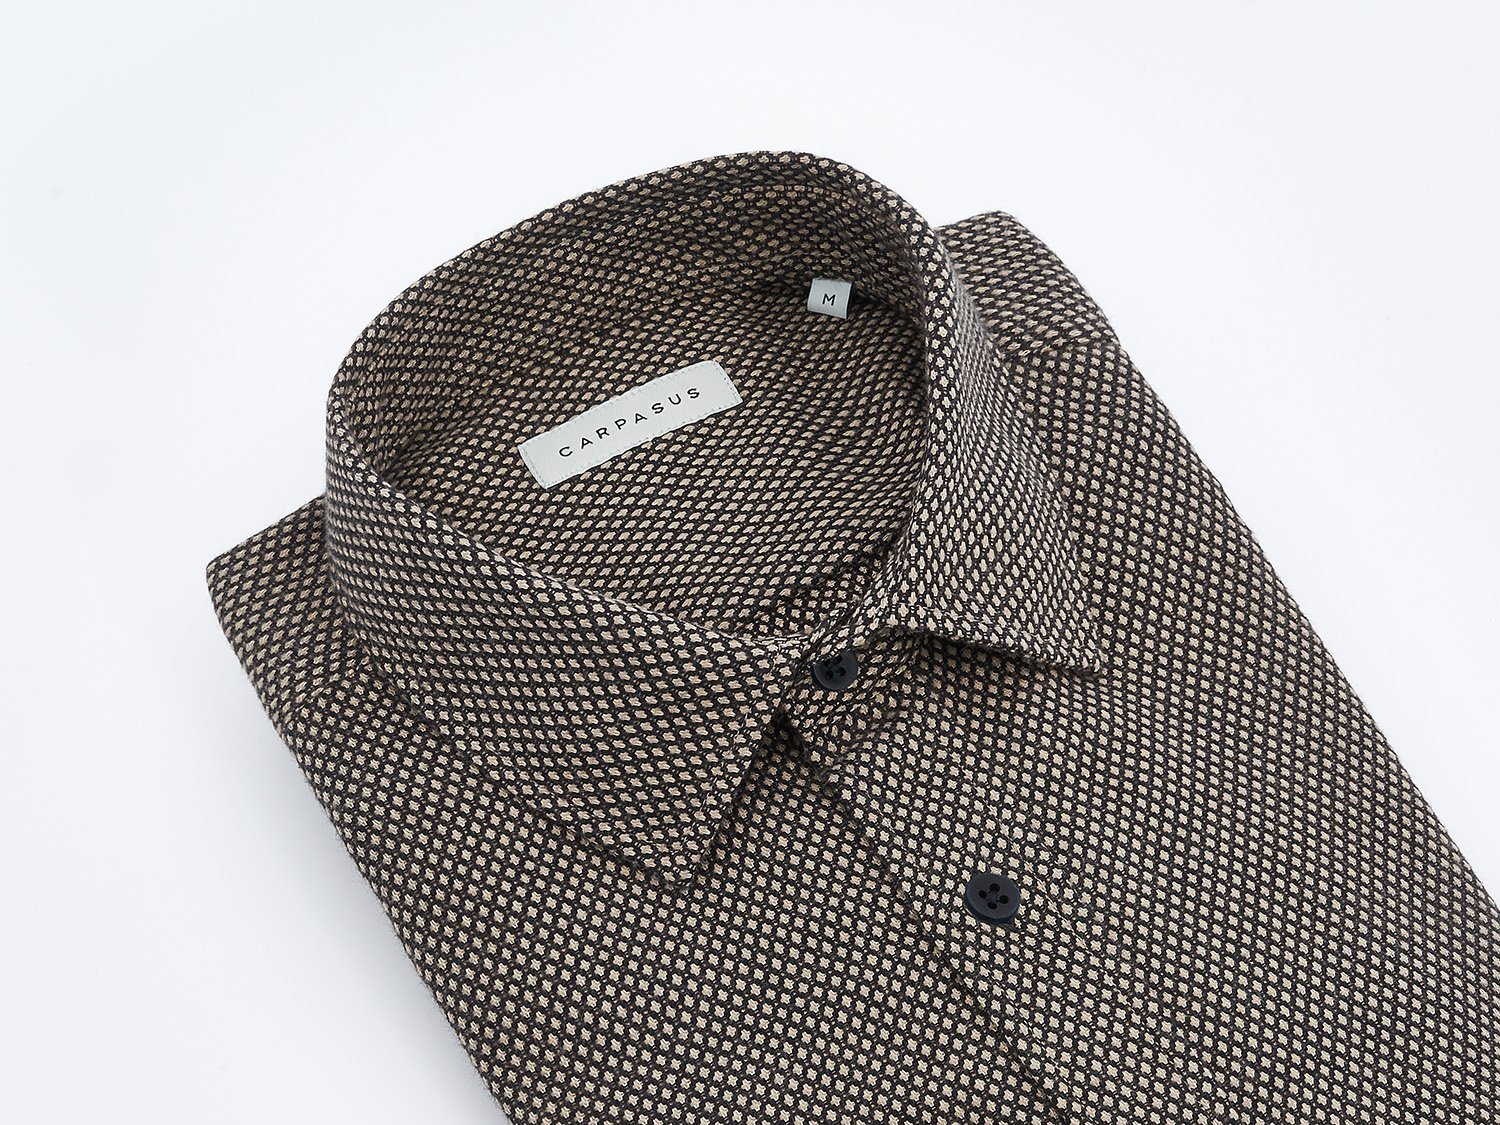 carpasus sustainable organic cotton shirt lynx black. Nachhaltiges Carpasus Hemd Lynx aus Bio Baumwolle in Schwarz